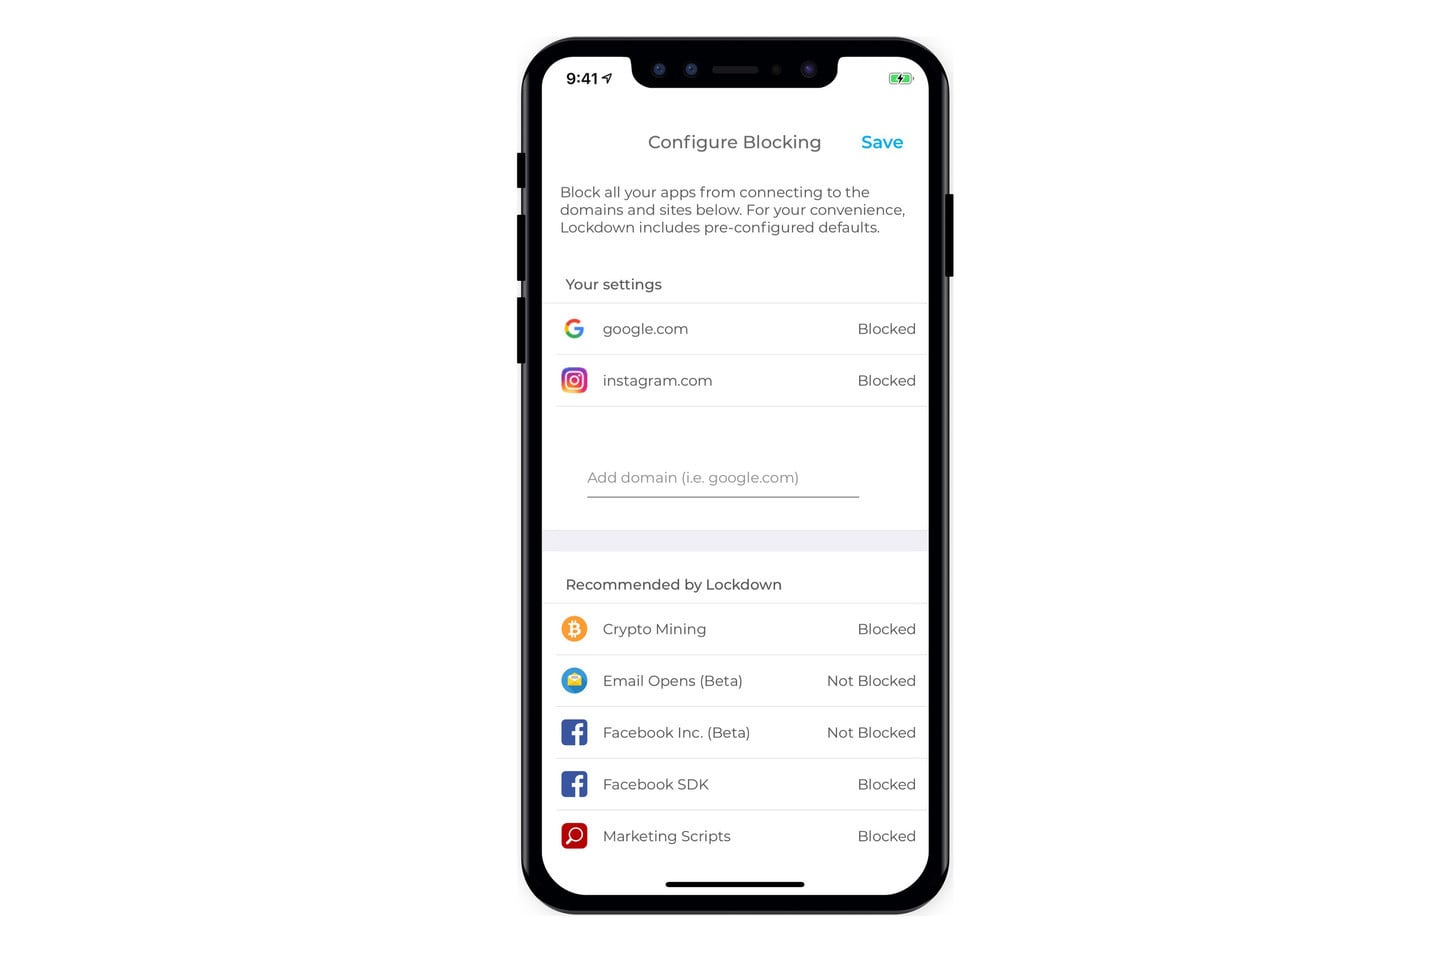 Lockdown Provides a Free and Secure Firewall for Your iPhone